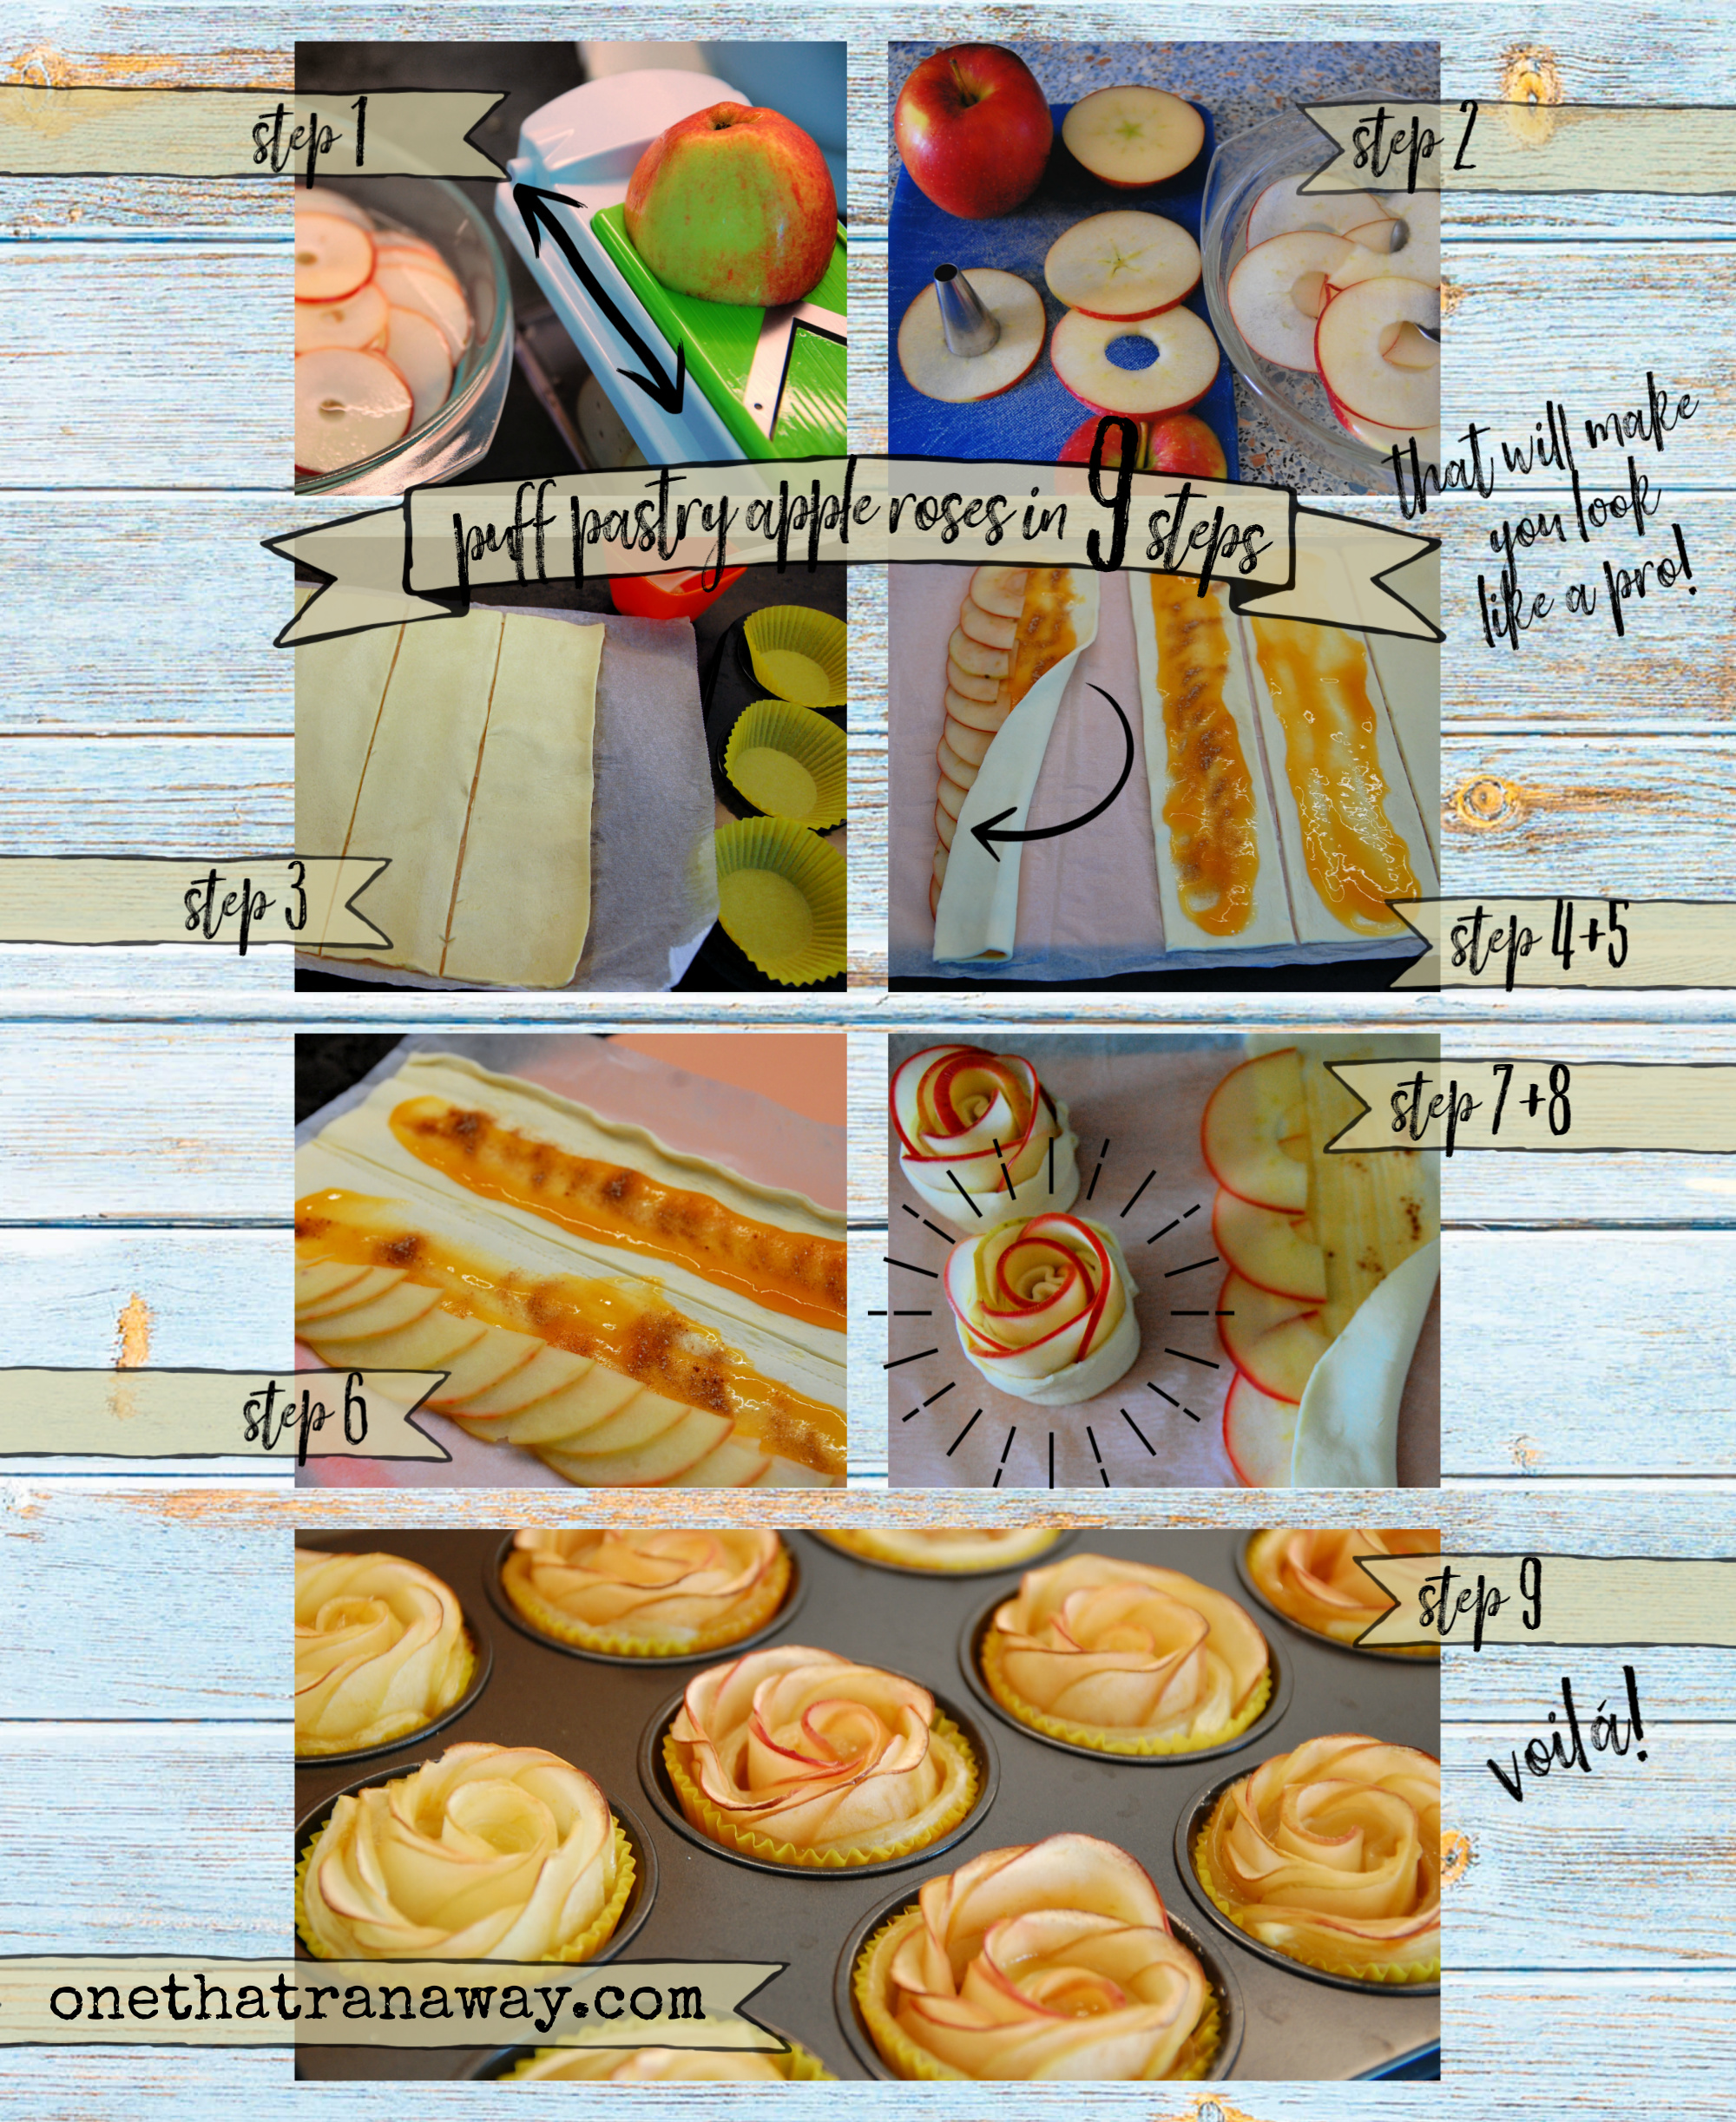 perfect puff pastry apple roses in 9 steps